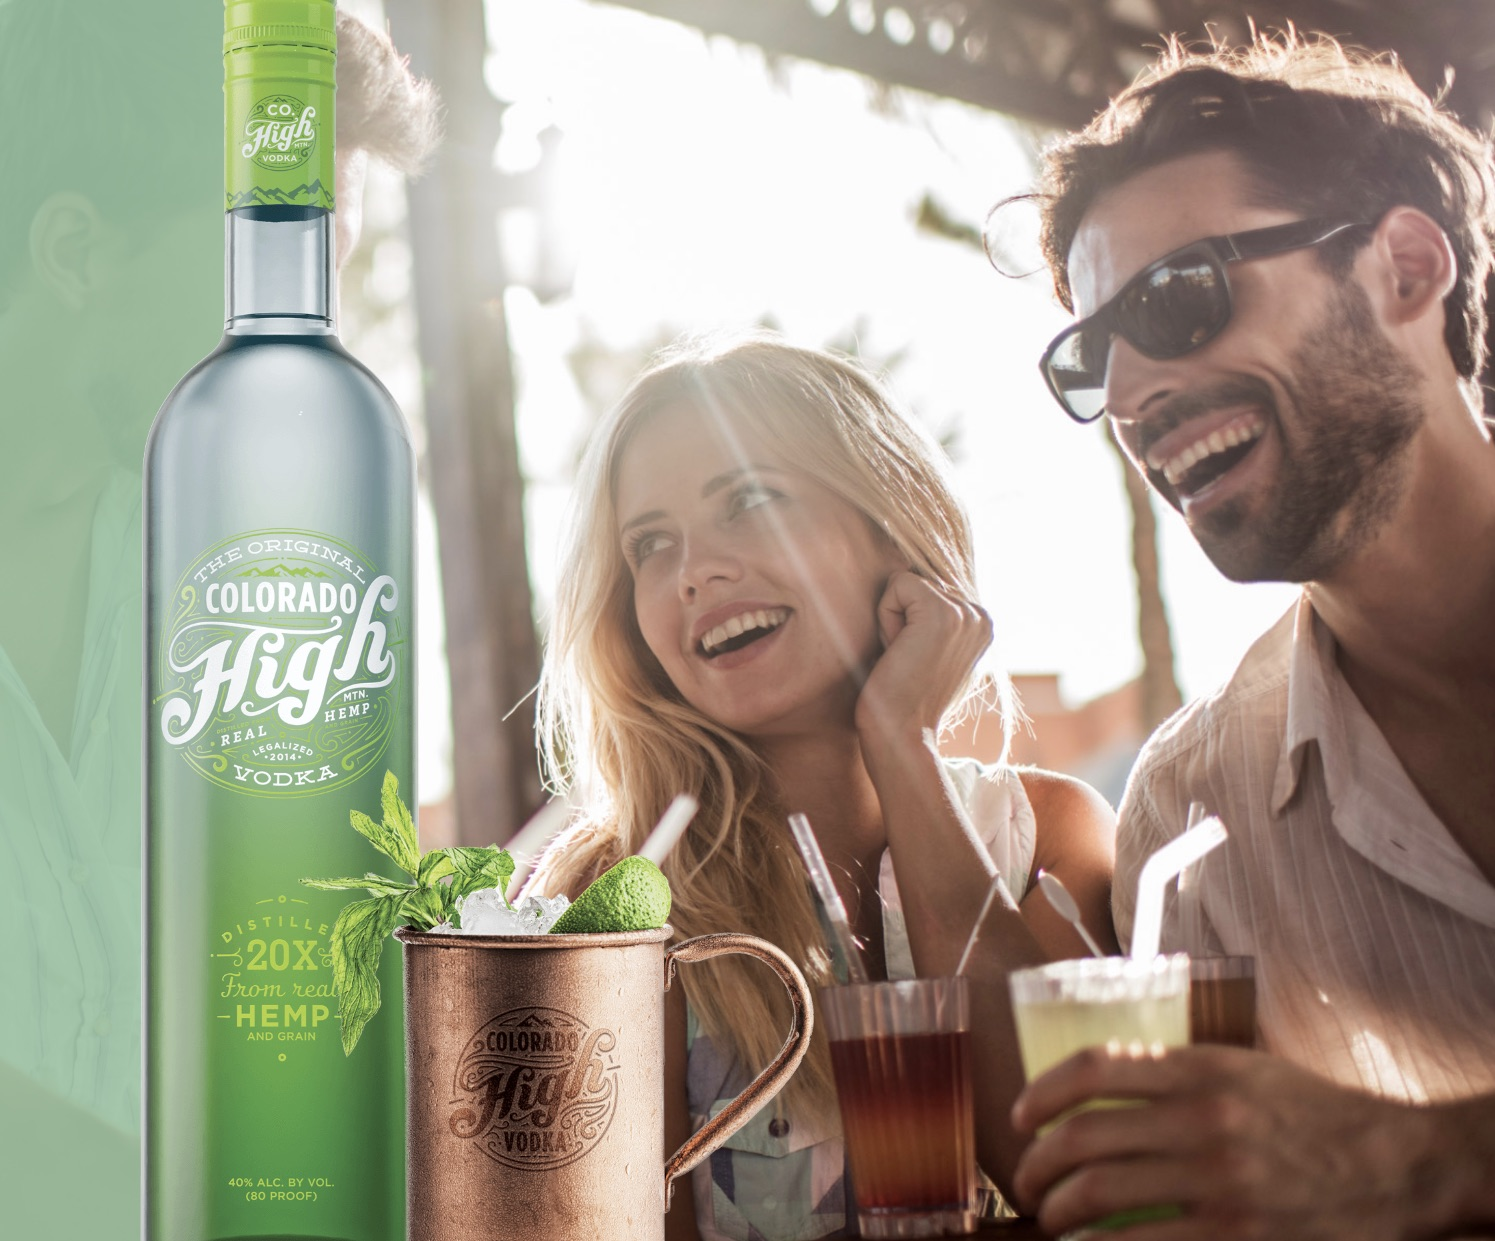 odka Colorado High Hemp Vodka